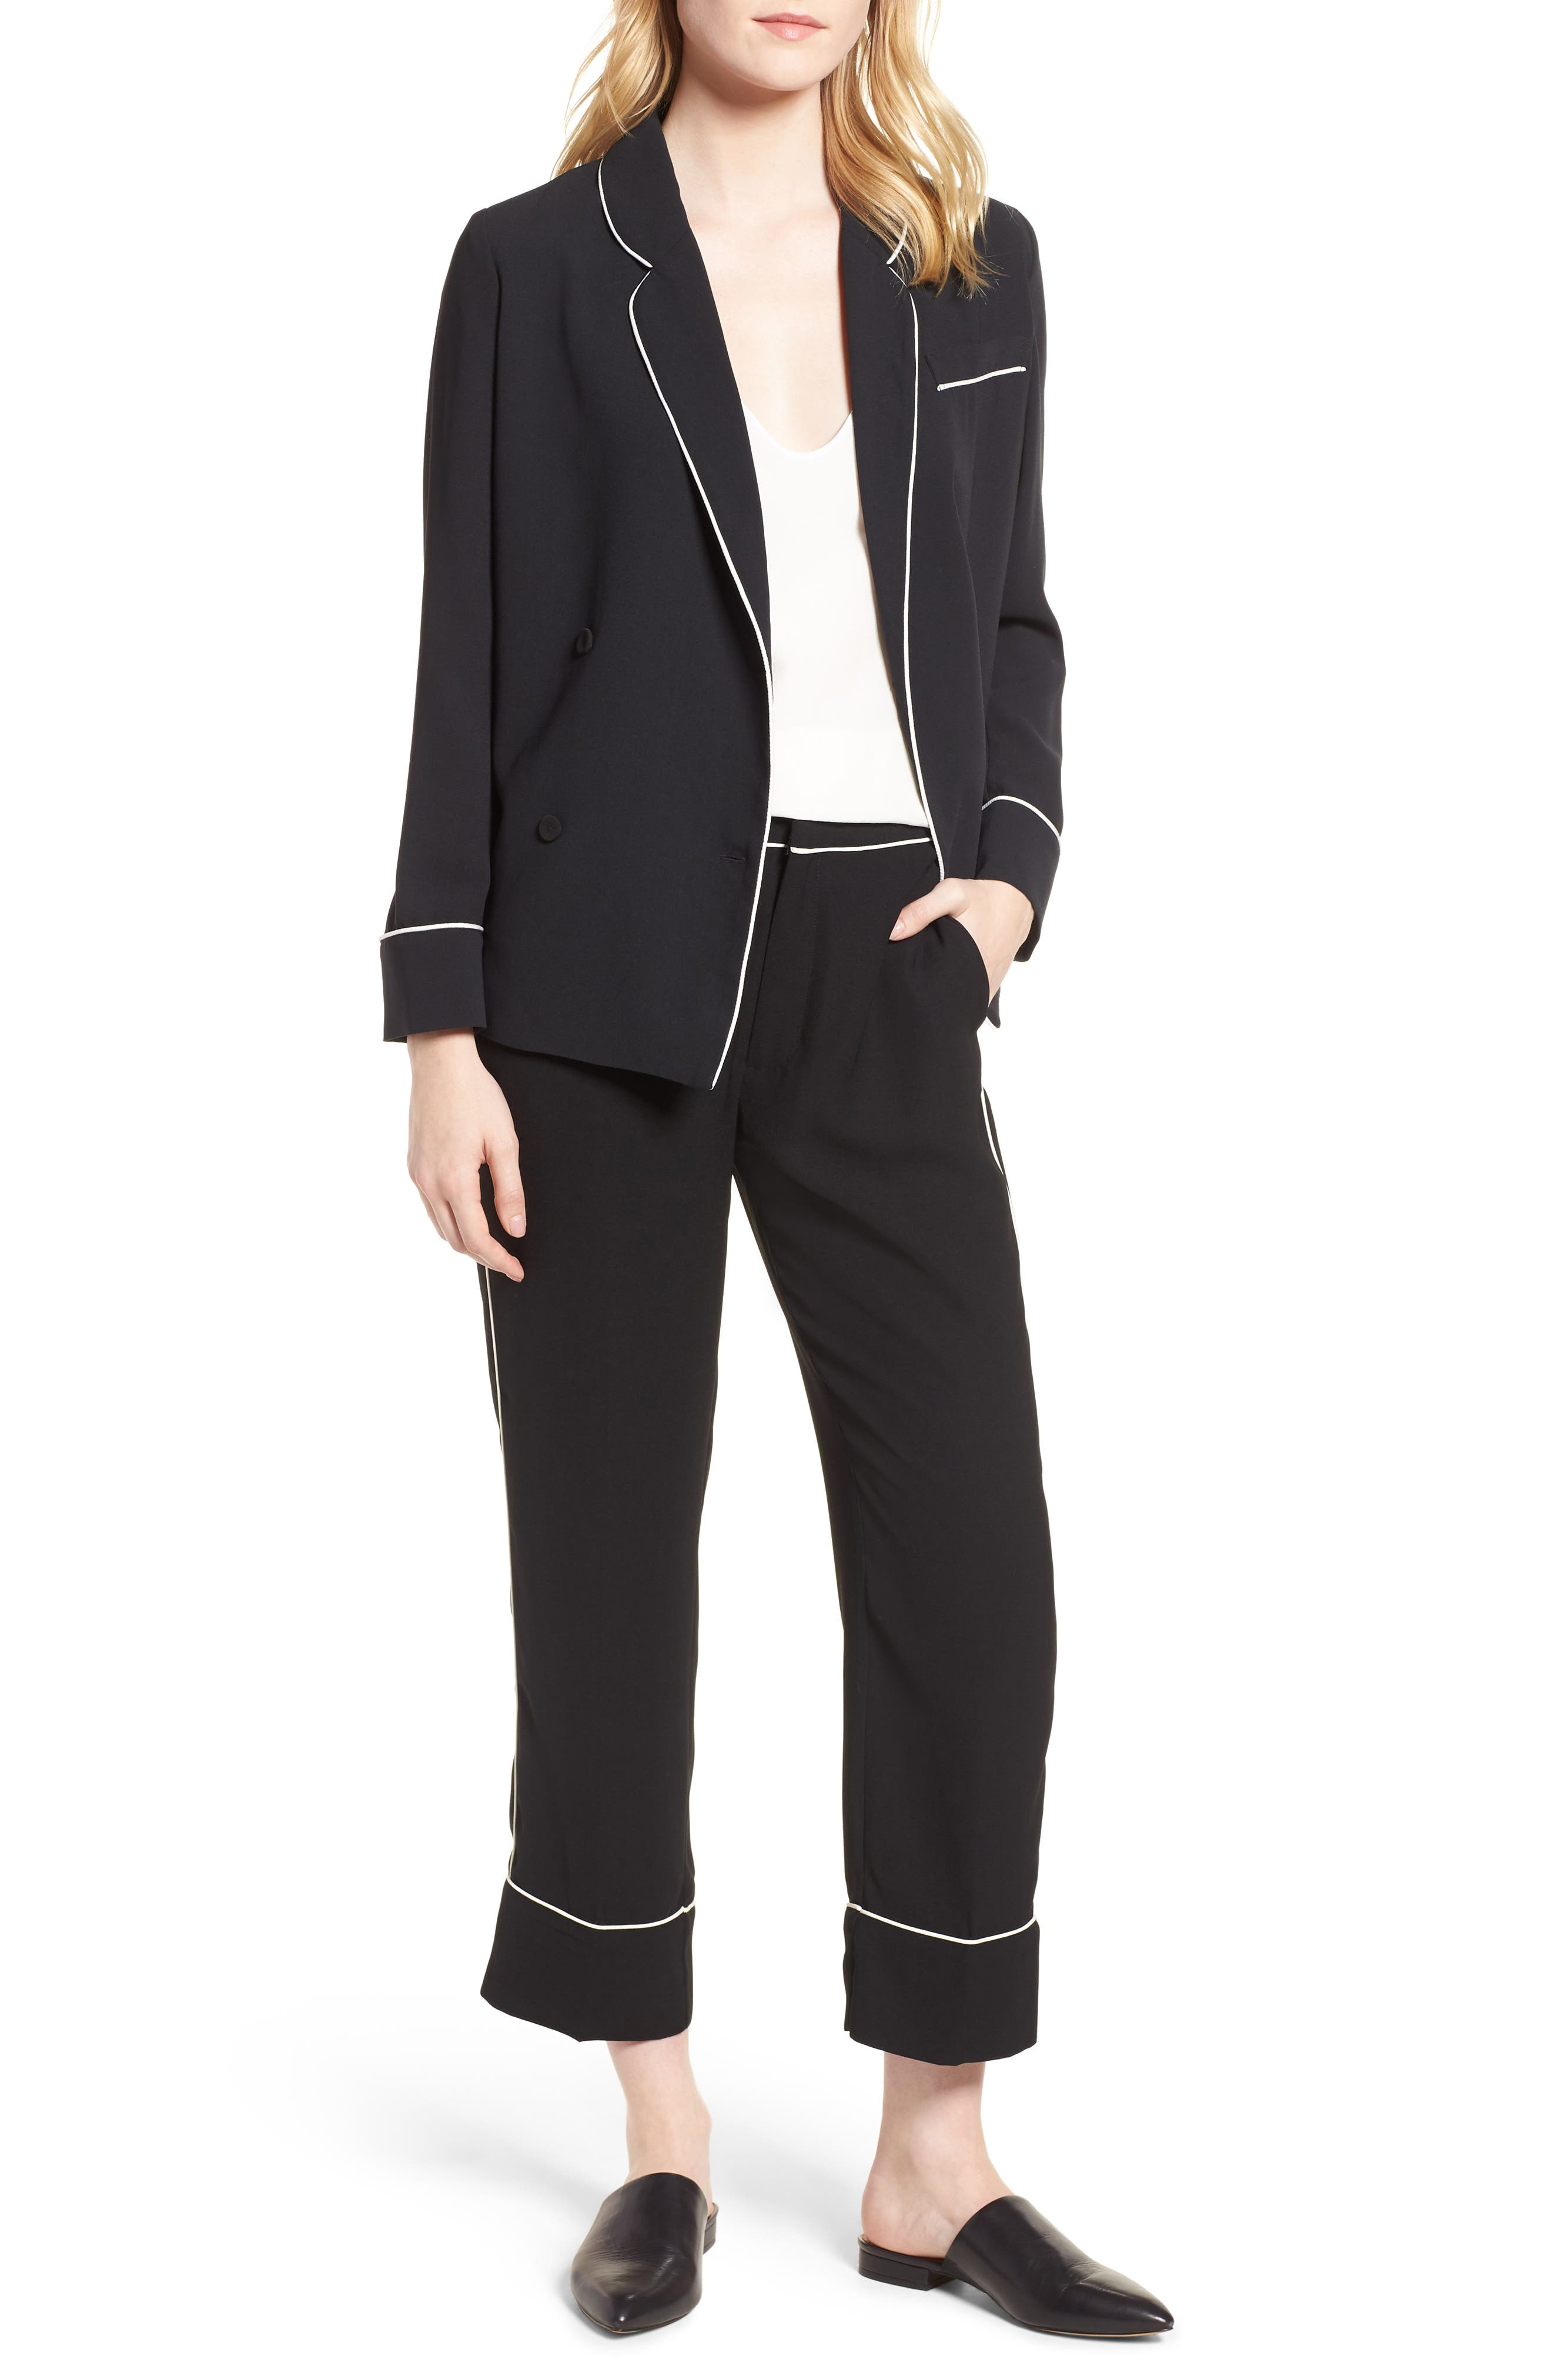 Ankle Pants,                             Alternate thumbnail 8, color,                             Black/ Bright White Piping